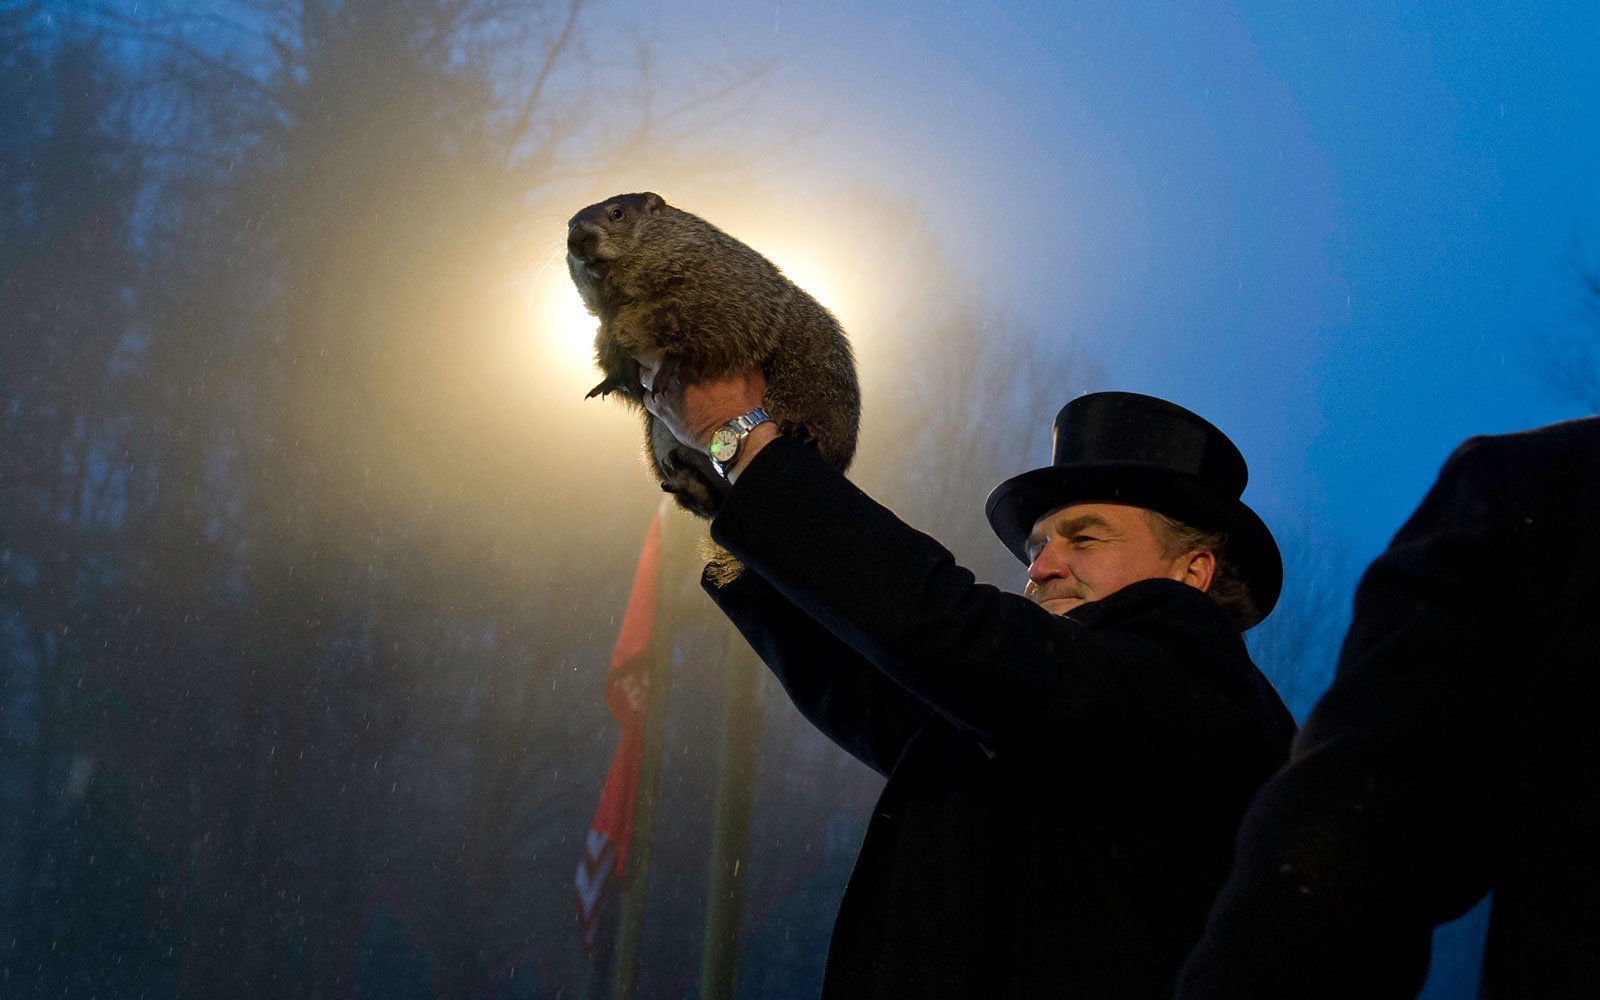 Groundhog doesn't see his shadow, predicting early spring